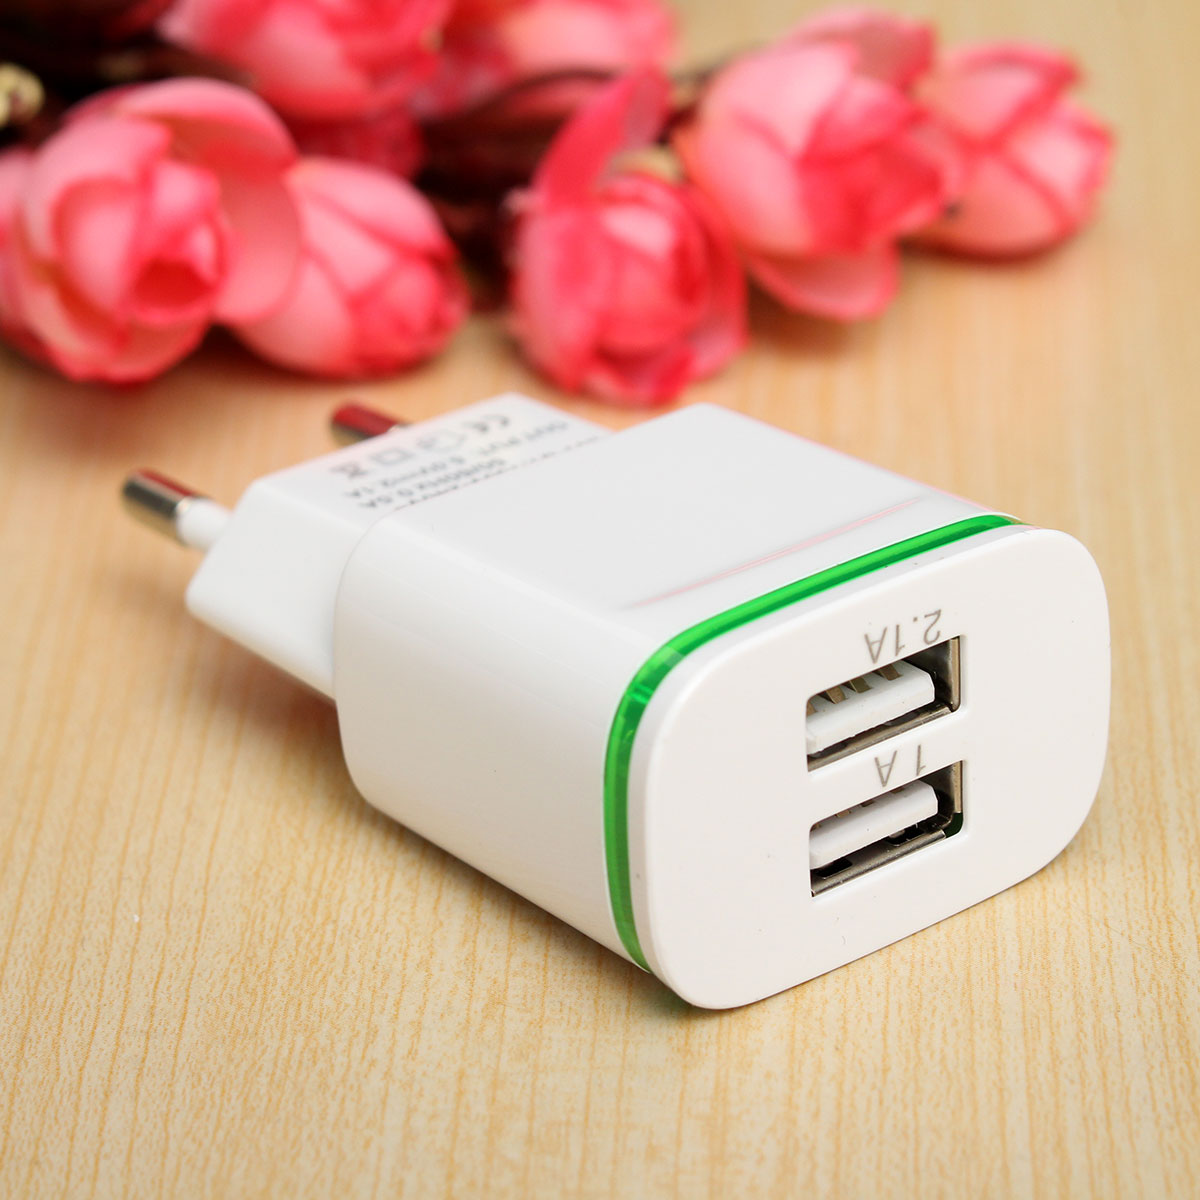 LED Light 2 Ports Dual USB 5V 2A EU US PLug Universal Mobile Phone Fast Charging Power  Adapter For Samsung For Iphone 5s 6